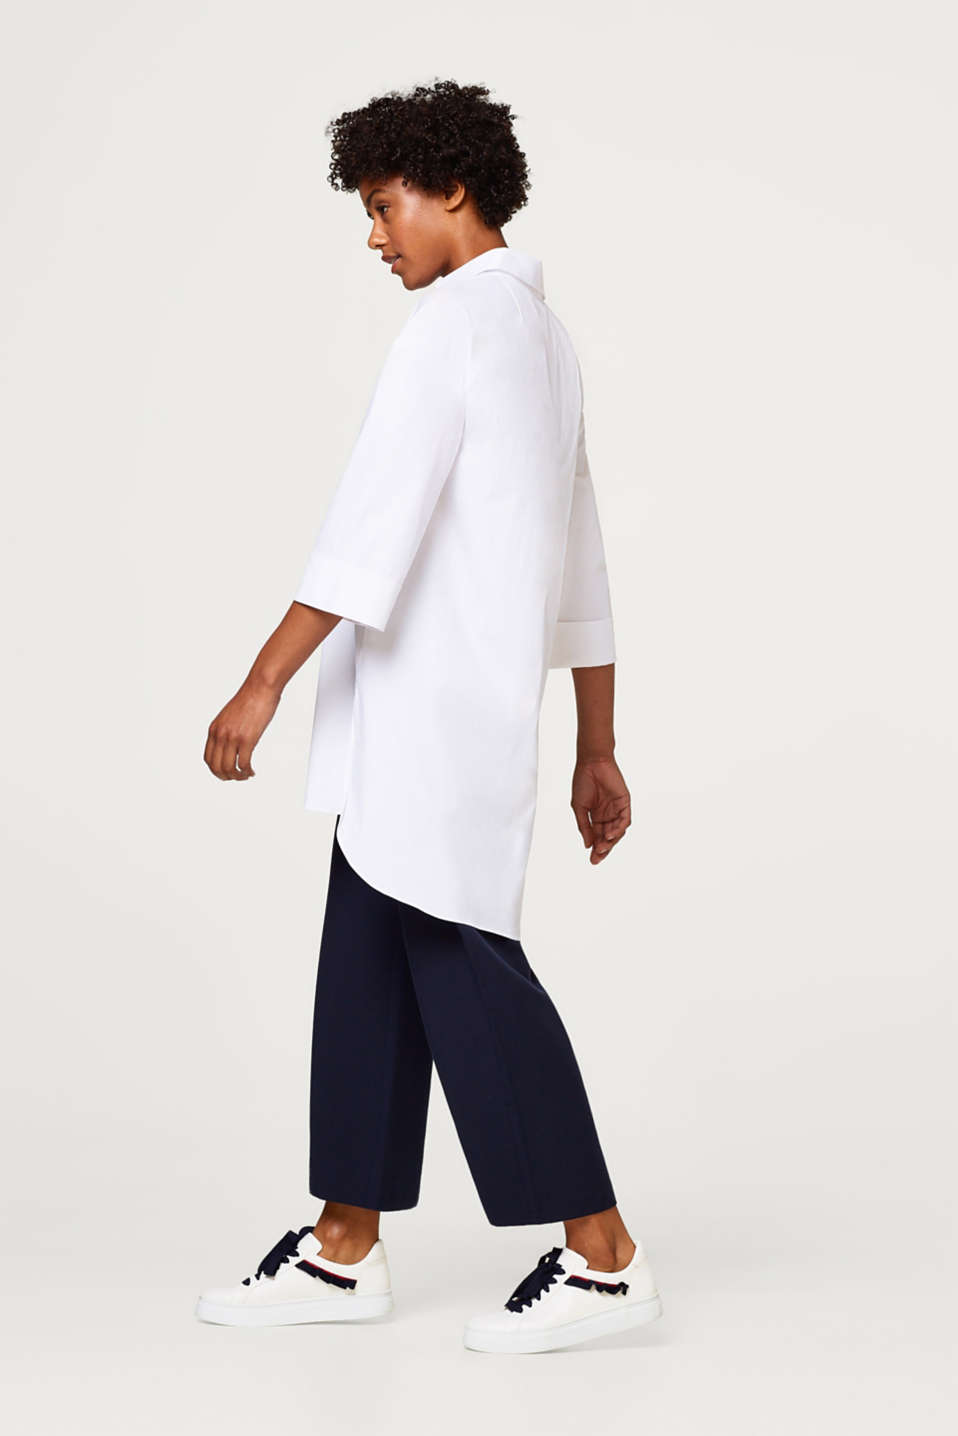 Long oversized blouse in a shirt style